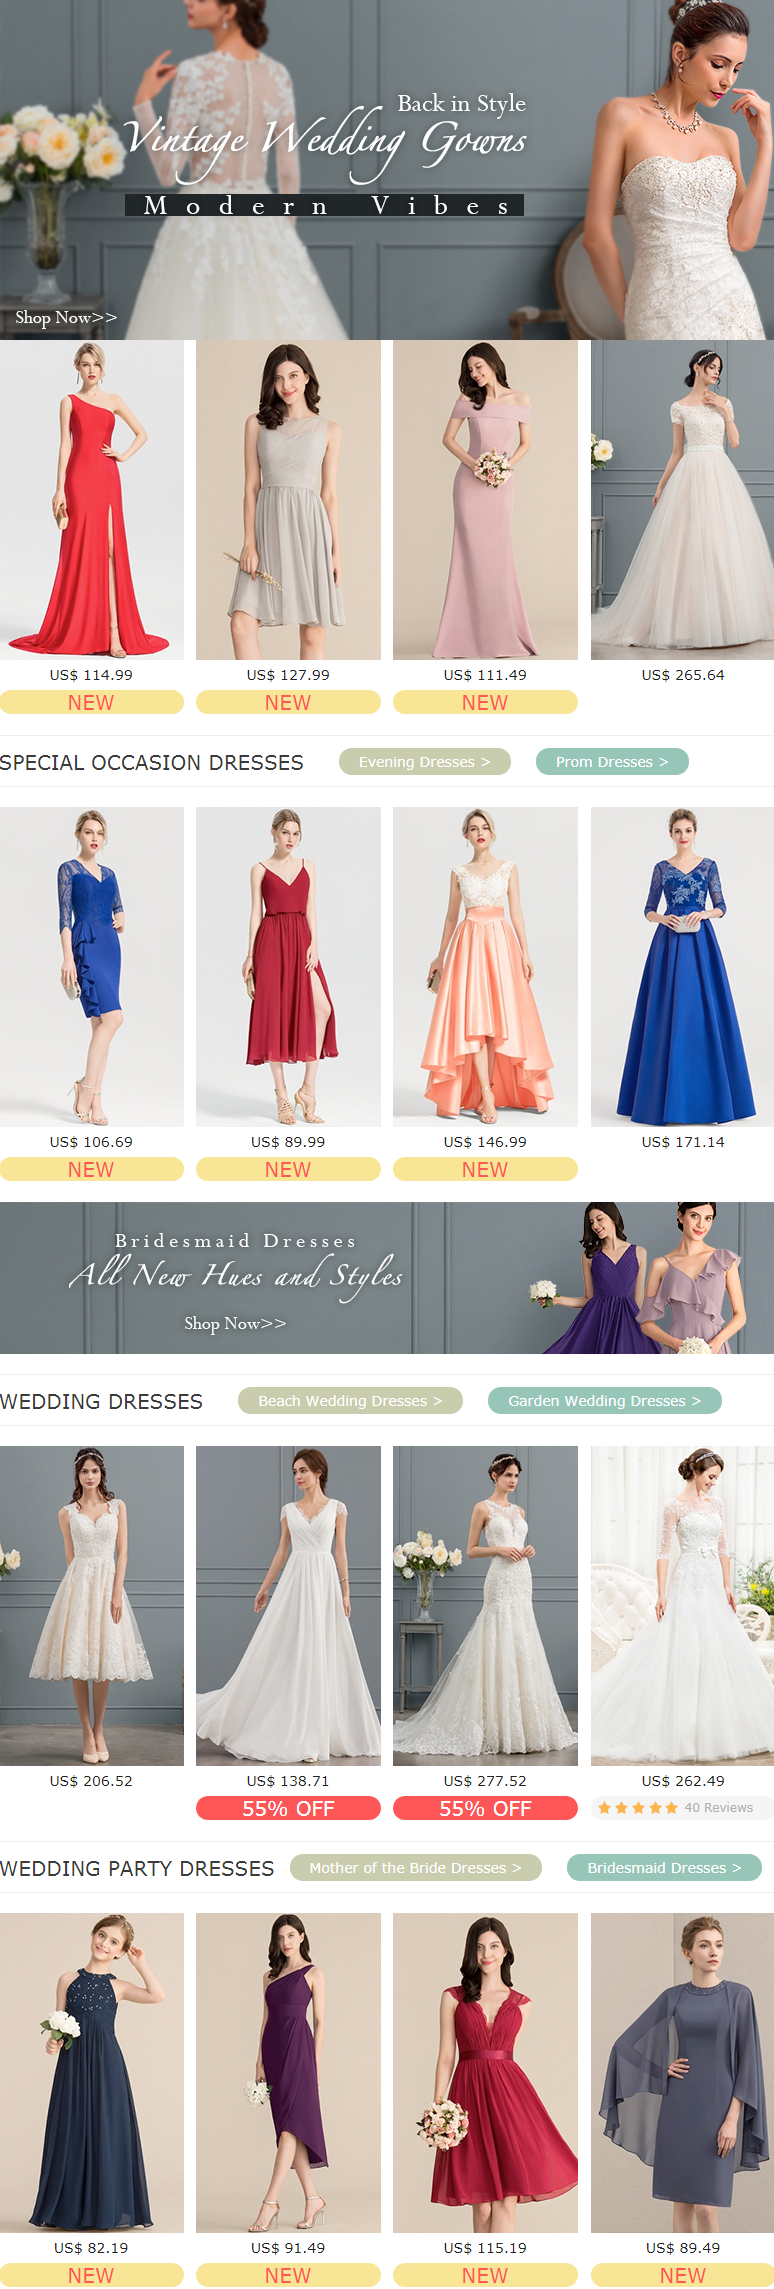 Without leaving your home, you could customize your wedding dresses and formal dresses with premium ...